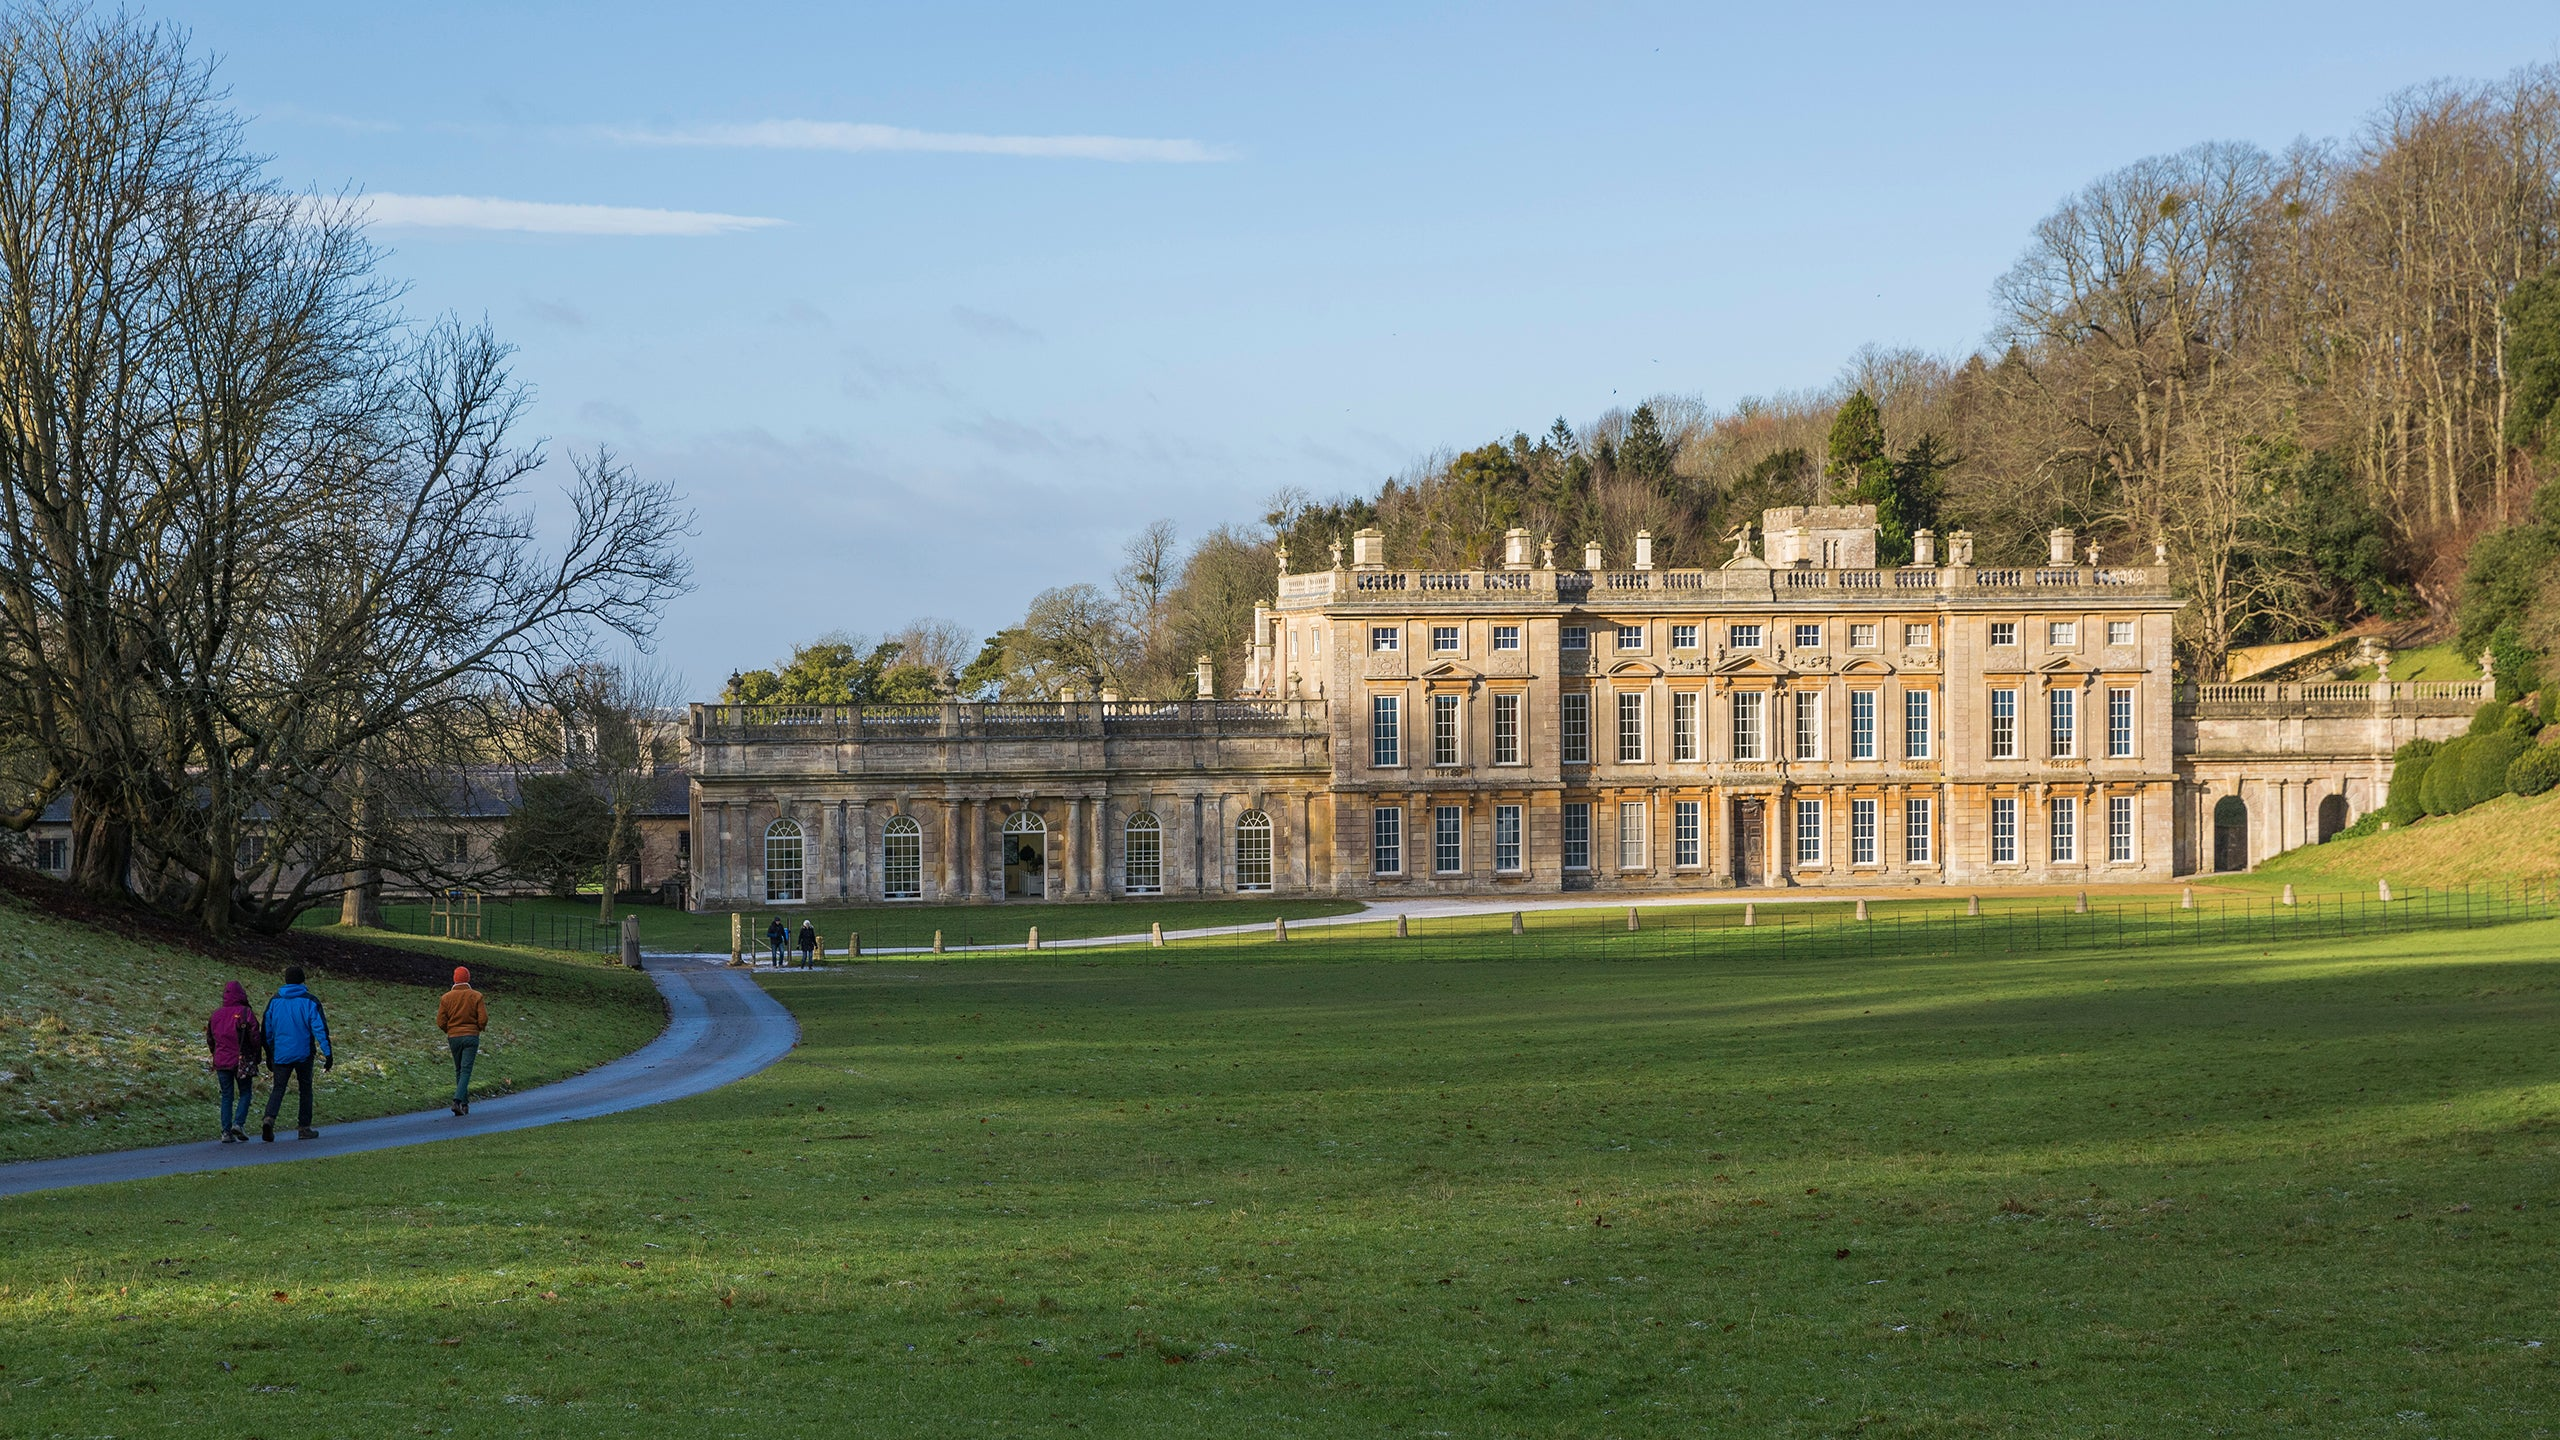 Visitors walking towards the house in winter at Dyrham Park, Gloucestershire